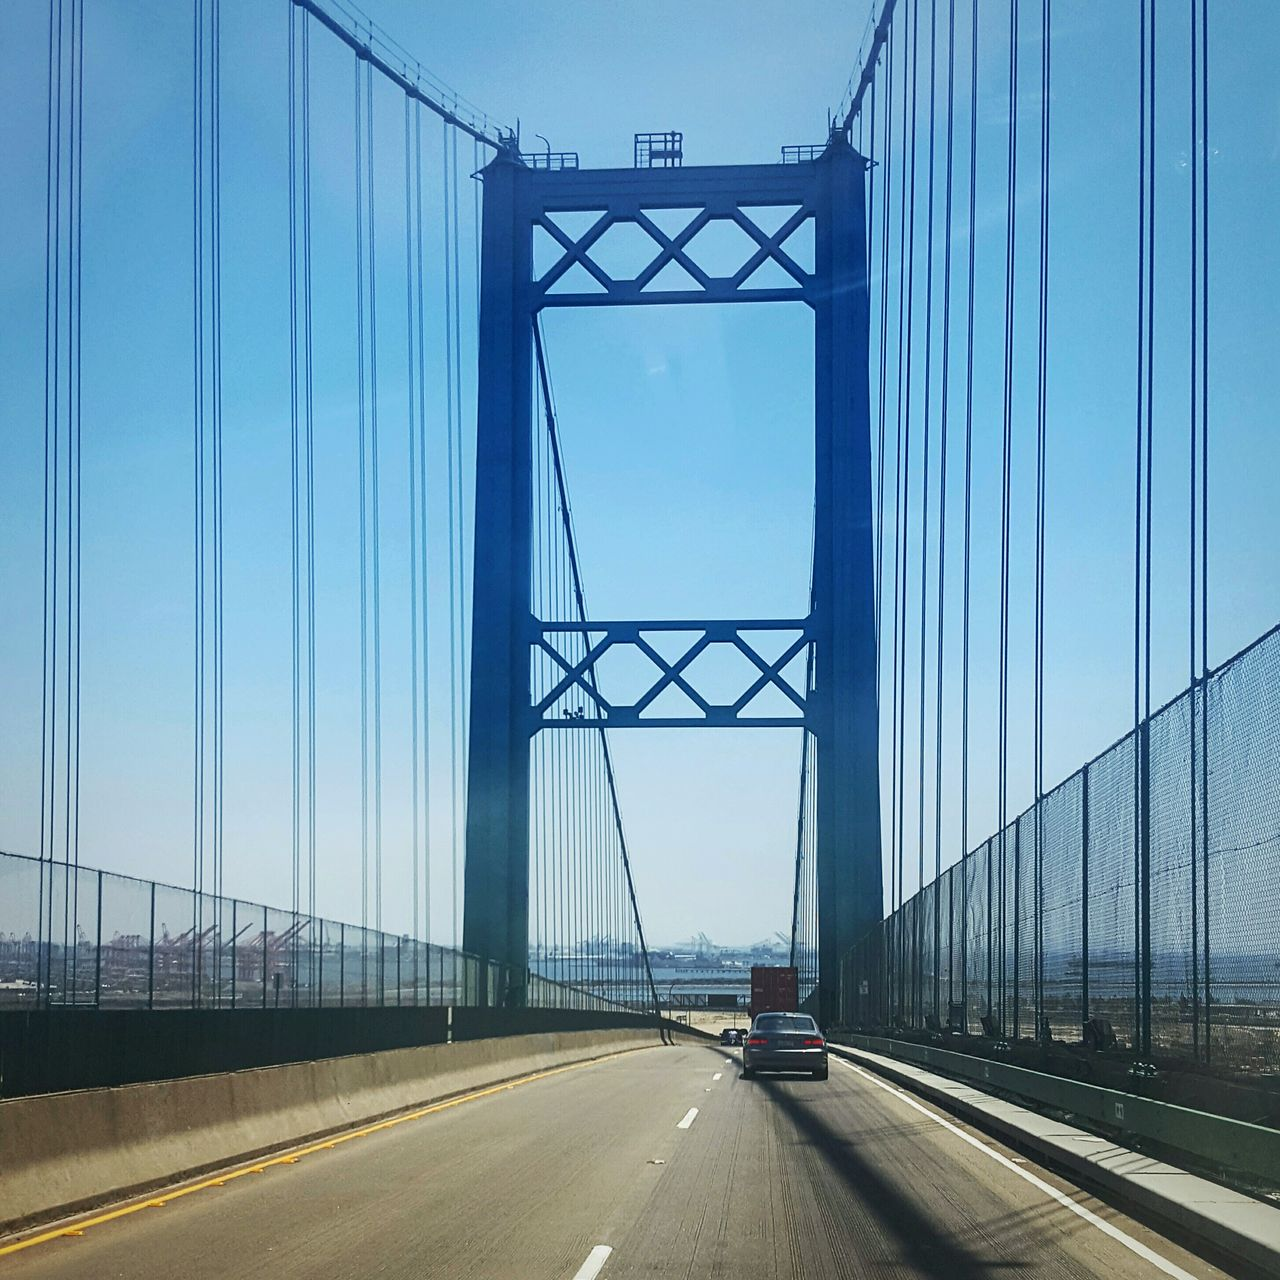 Driving Over The Vicente Thomas Bridge Abstract Photography Outdoor Photography Urban Exploration Street Photography Cityscapes My Perspective Perspective IShootFromMyWheelchair Bridge Photography Suspension Bridge Blue Sky Fresh On Eyeem  Eyeem Market EyeEm Eyeemphotography Eye4photography  ForTheLoveOfPhotography Fine Art On The Way